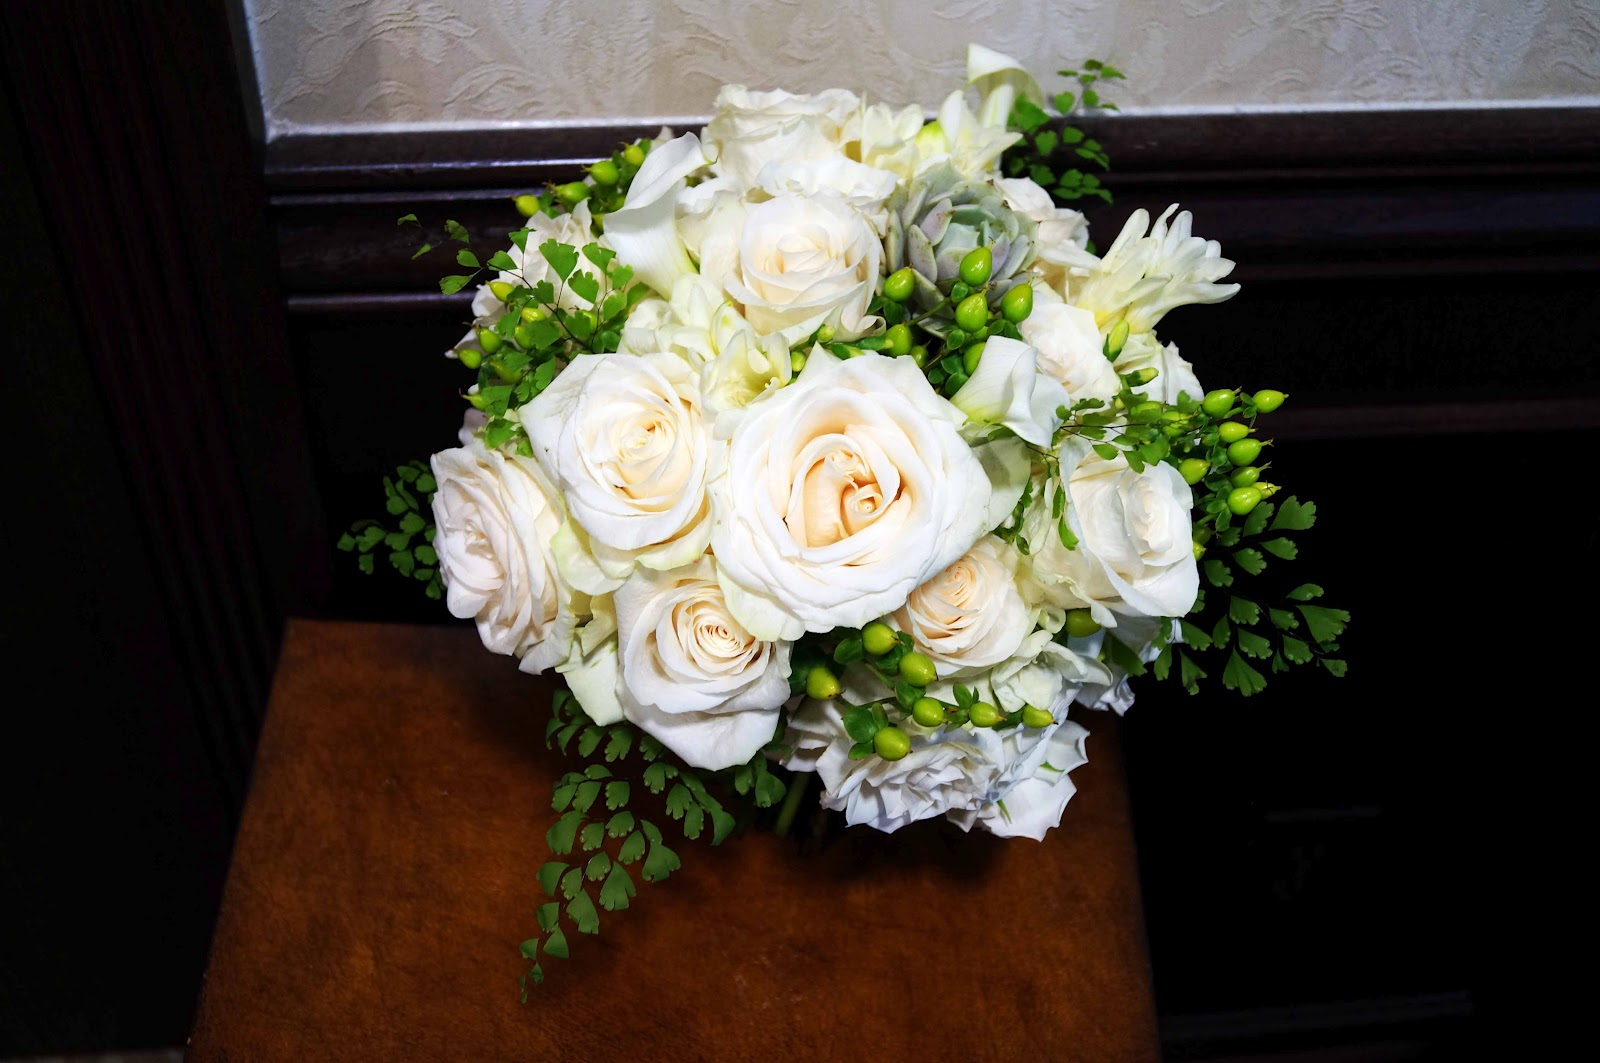 Knestrick By Design A Wedding With Vibrant Colors And Texture